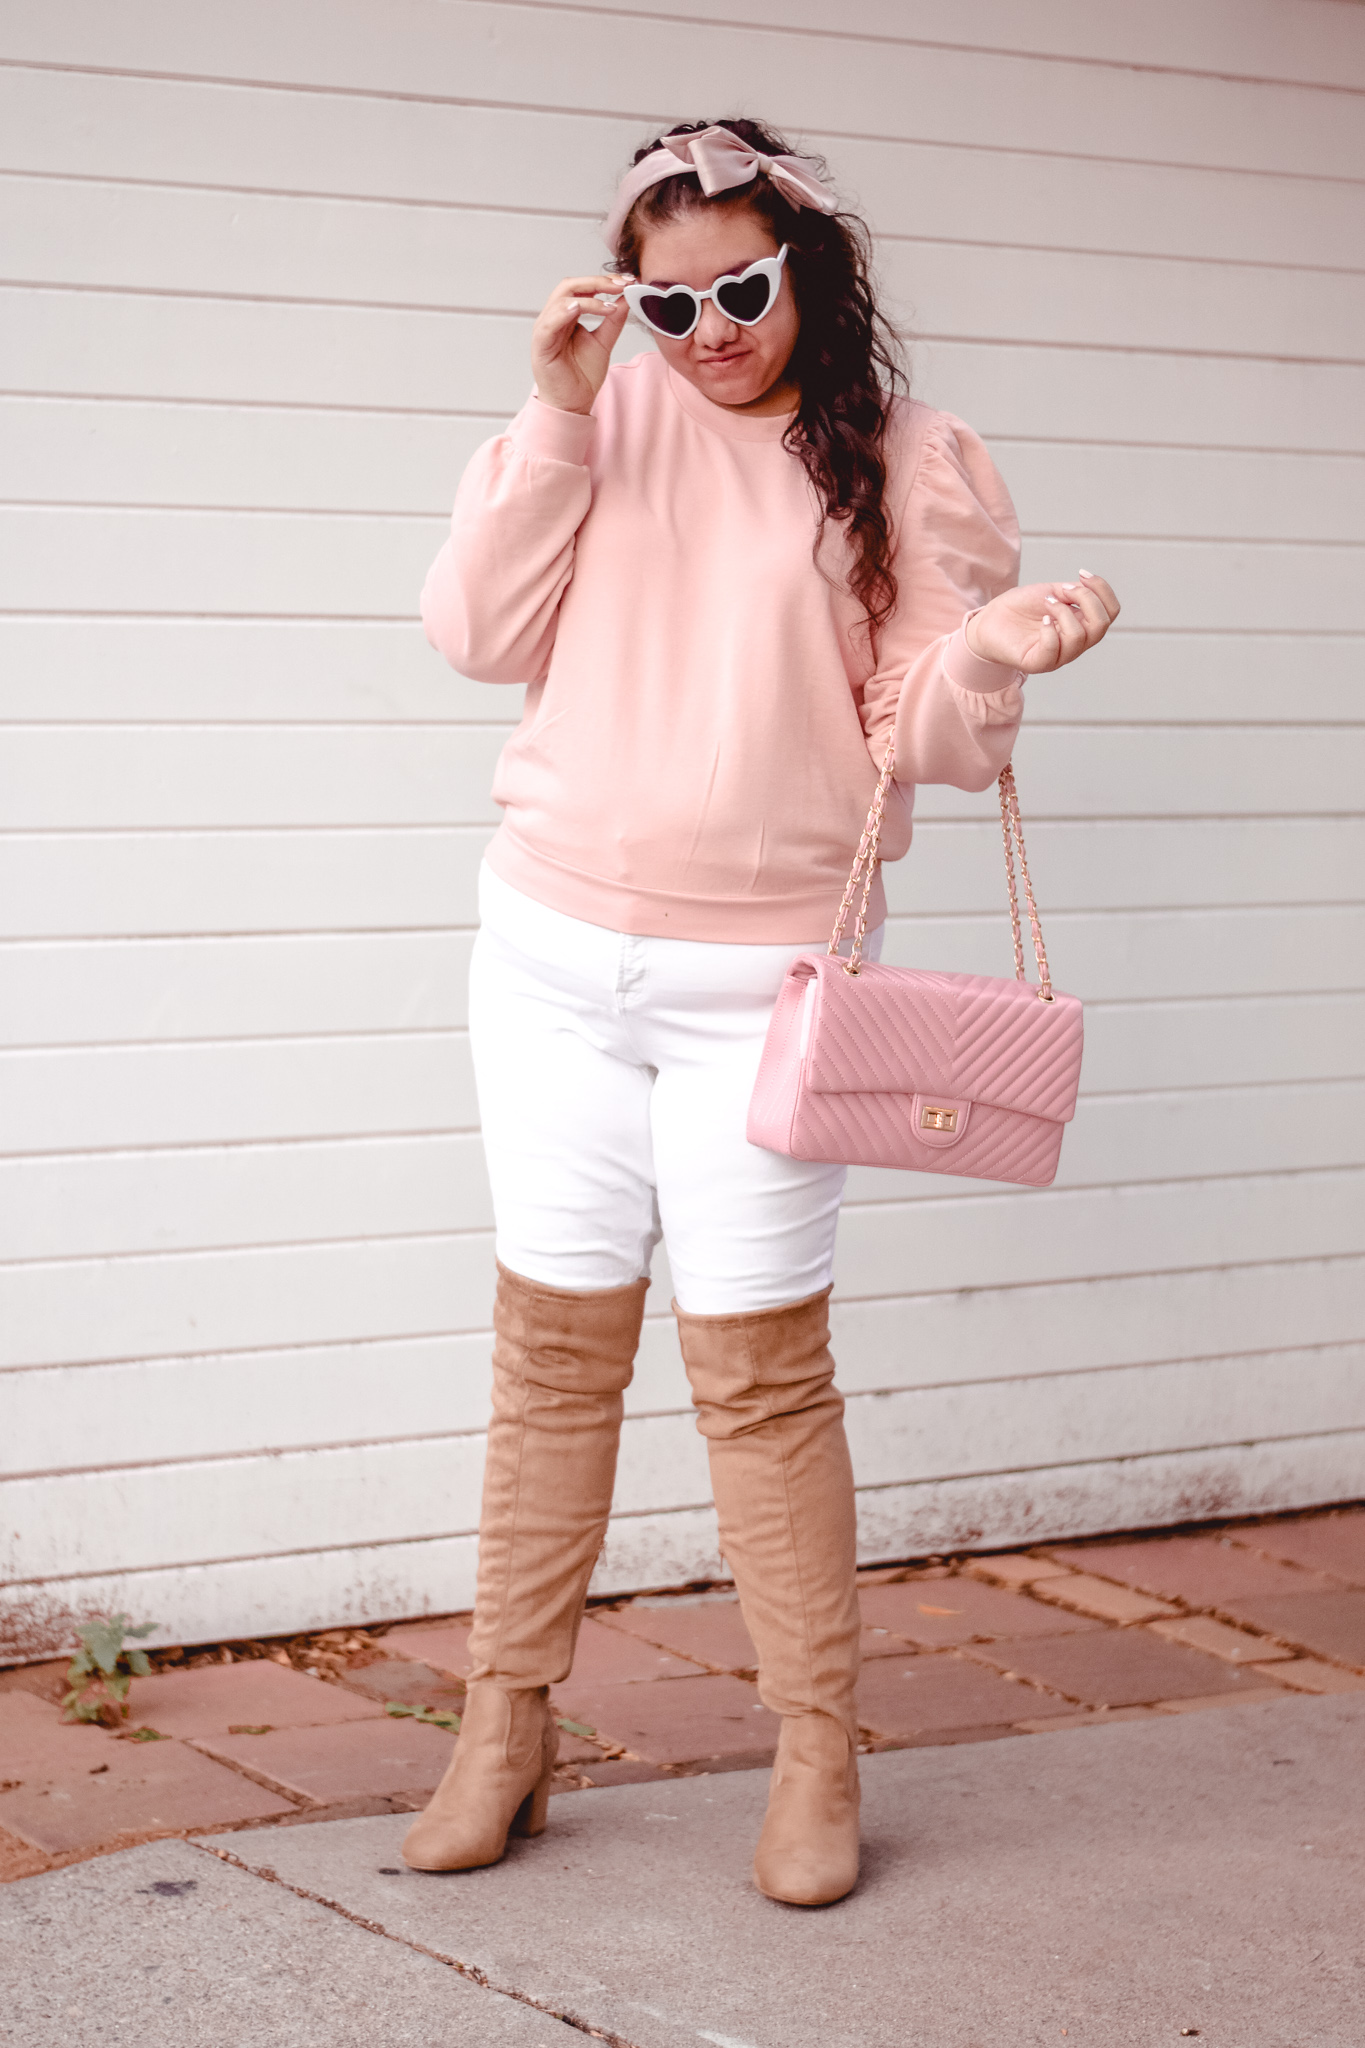 The Perfect Look to Transition into Spring